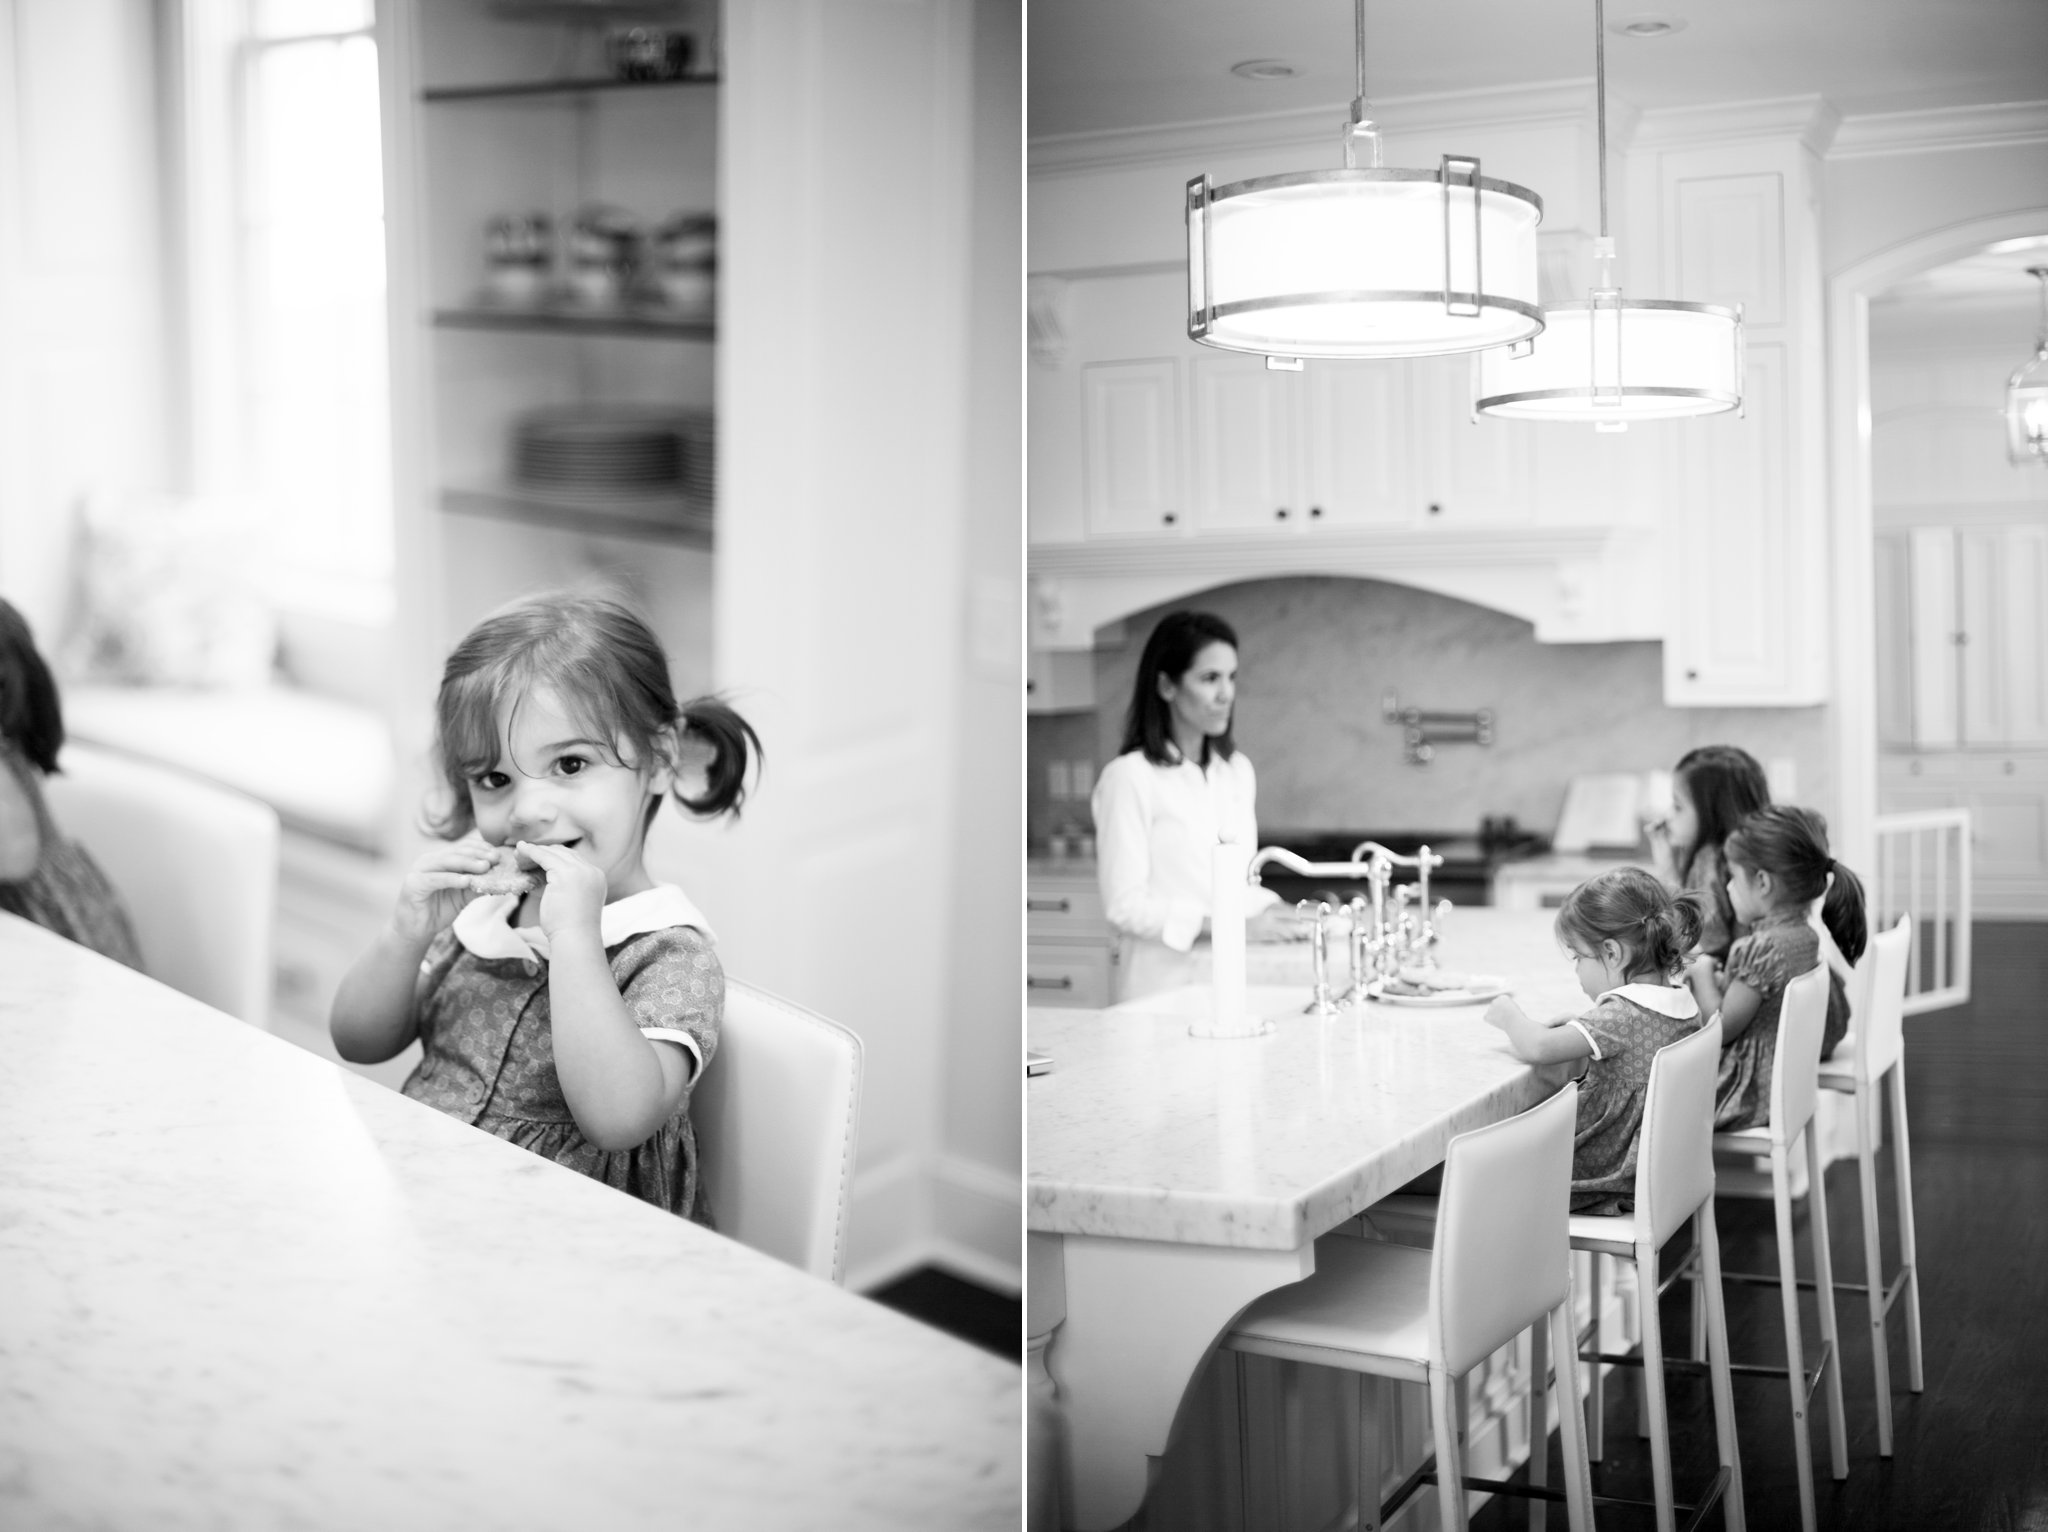 tallahassee family photographer shannon griffin photography_0027.jpg